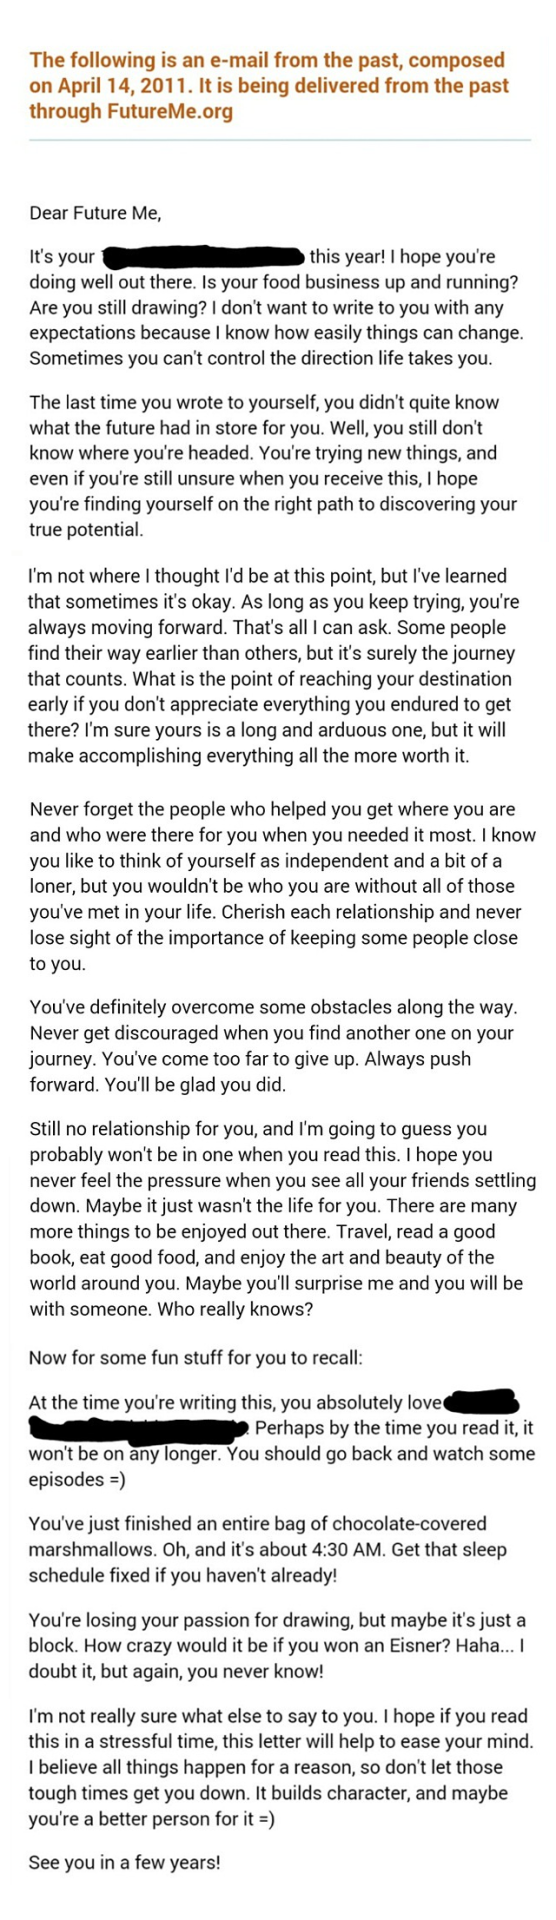 [Image] Got this in my e-mail when I was going through a bit of a rough time. I'd totally forgotten about it, but it came when I needed it most.